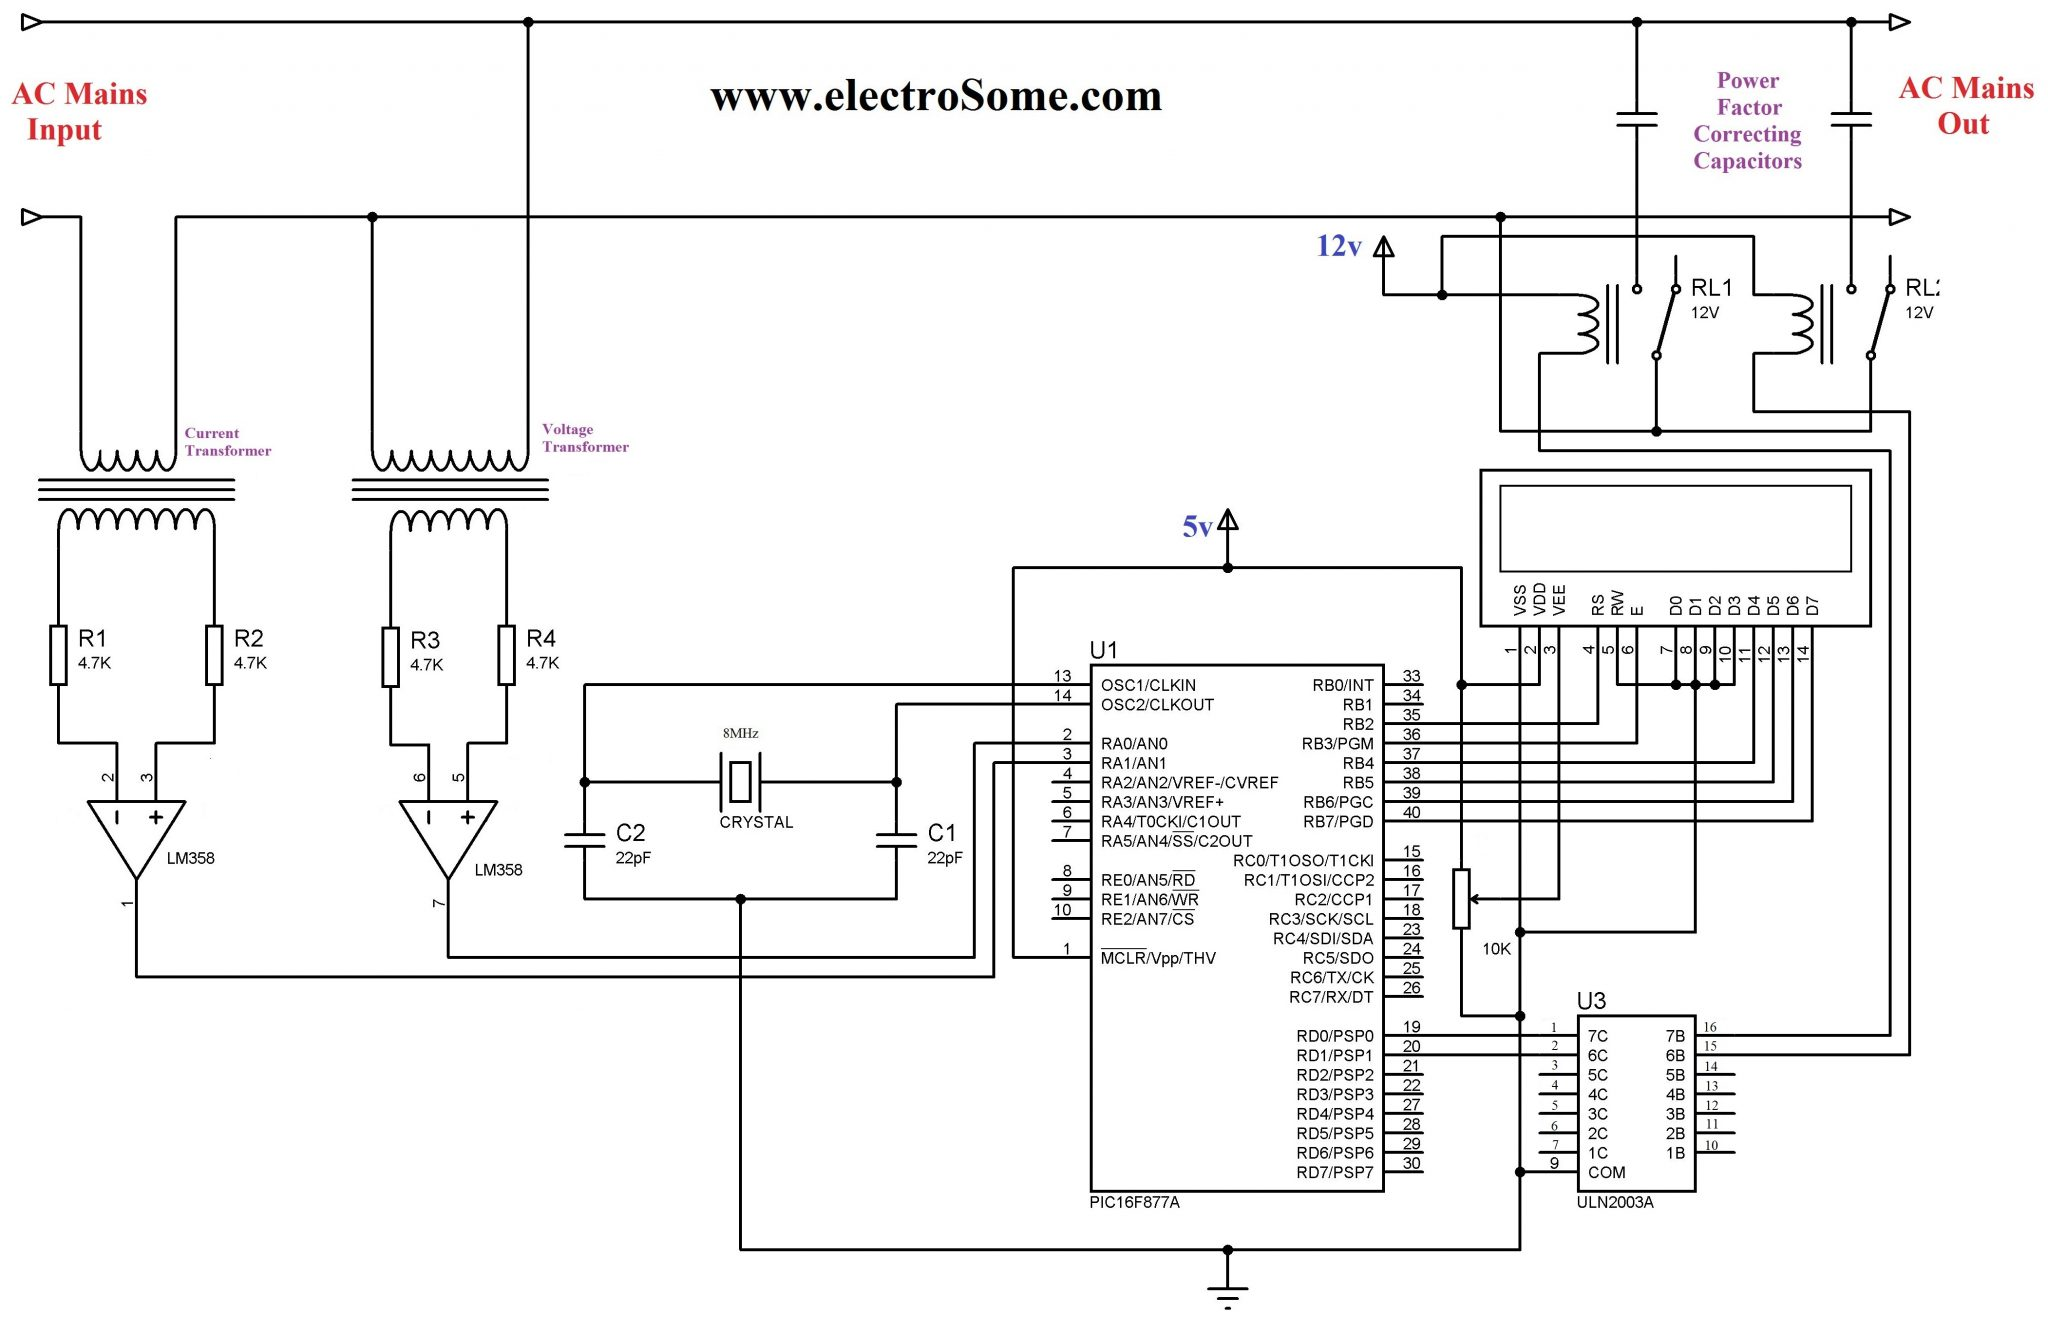 Automatic Power Factor Controller Using Microcontroller also Electrical Wiring Diagrams For Air Conditioning likewise 3549574 as well 33 Behringer X32 Recording additionally Drl. on security control box